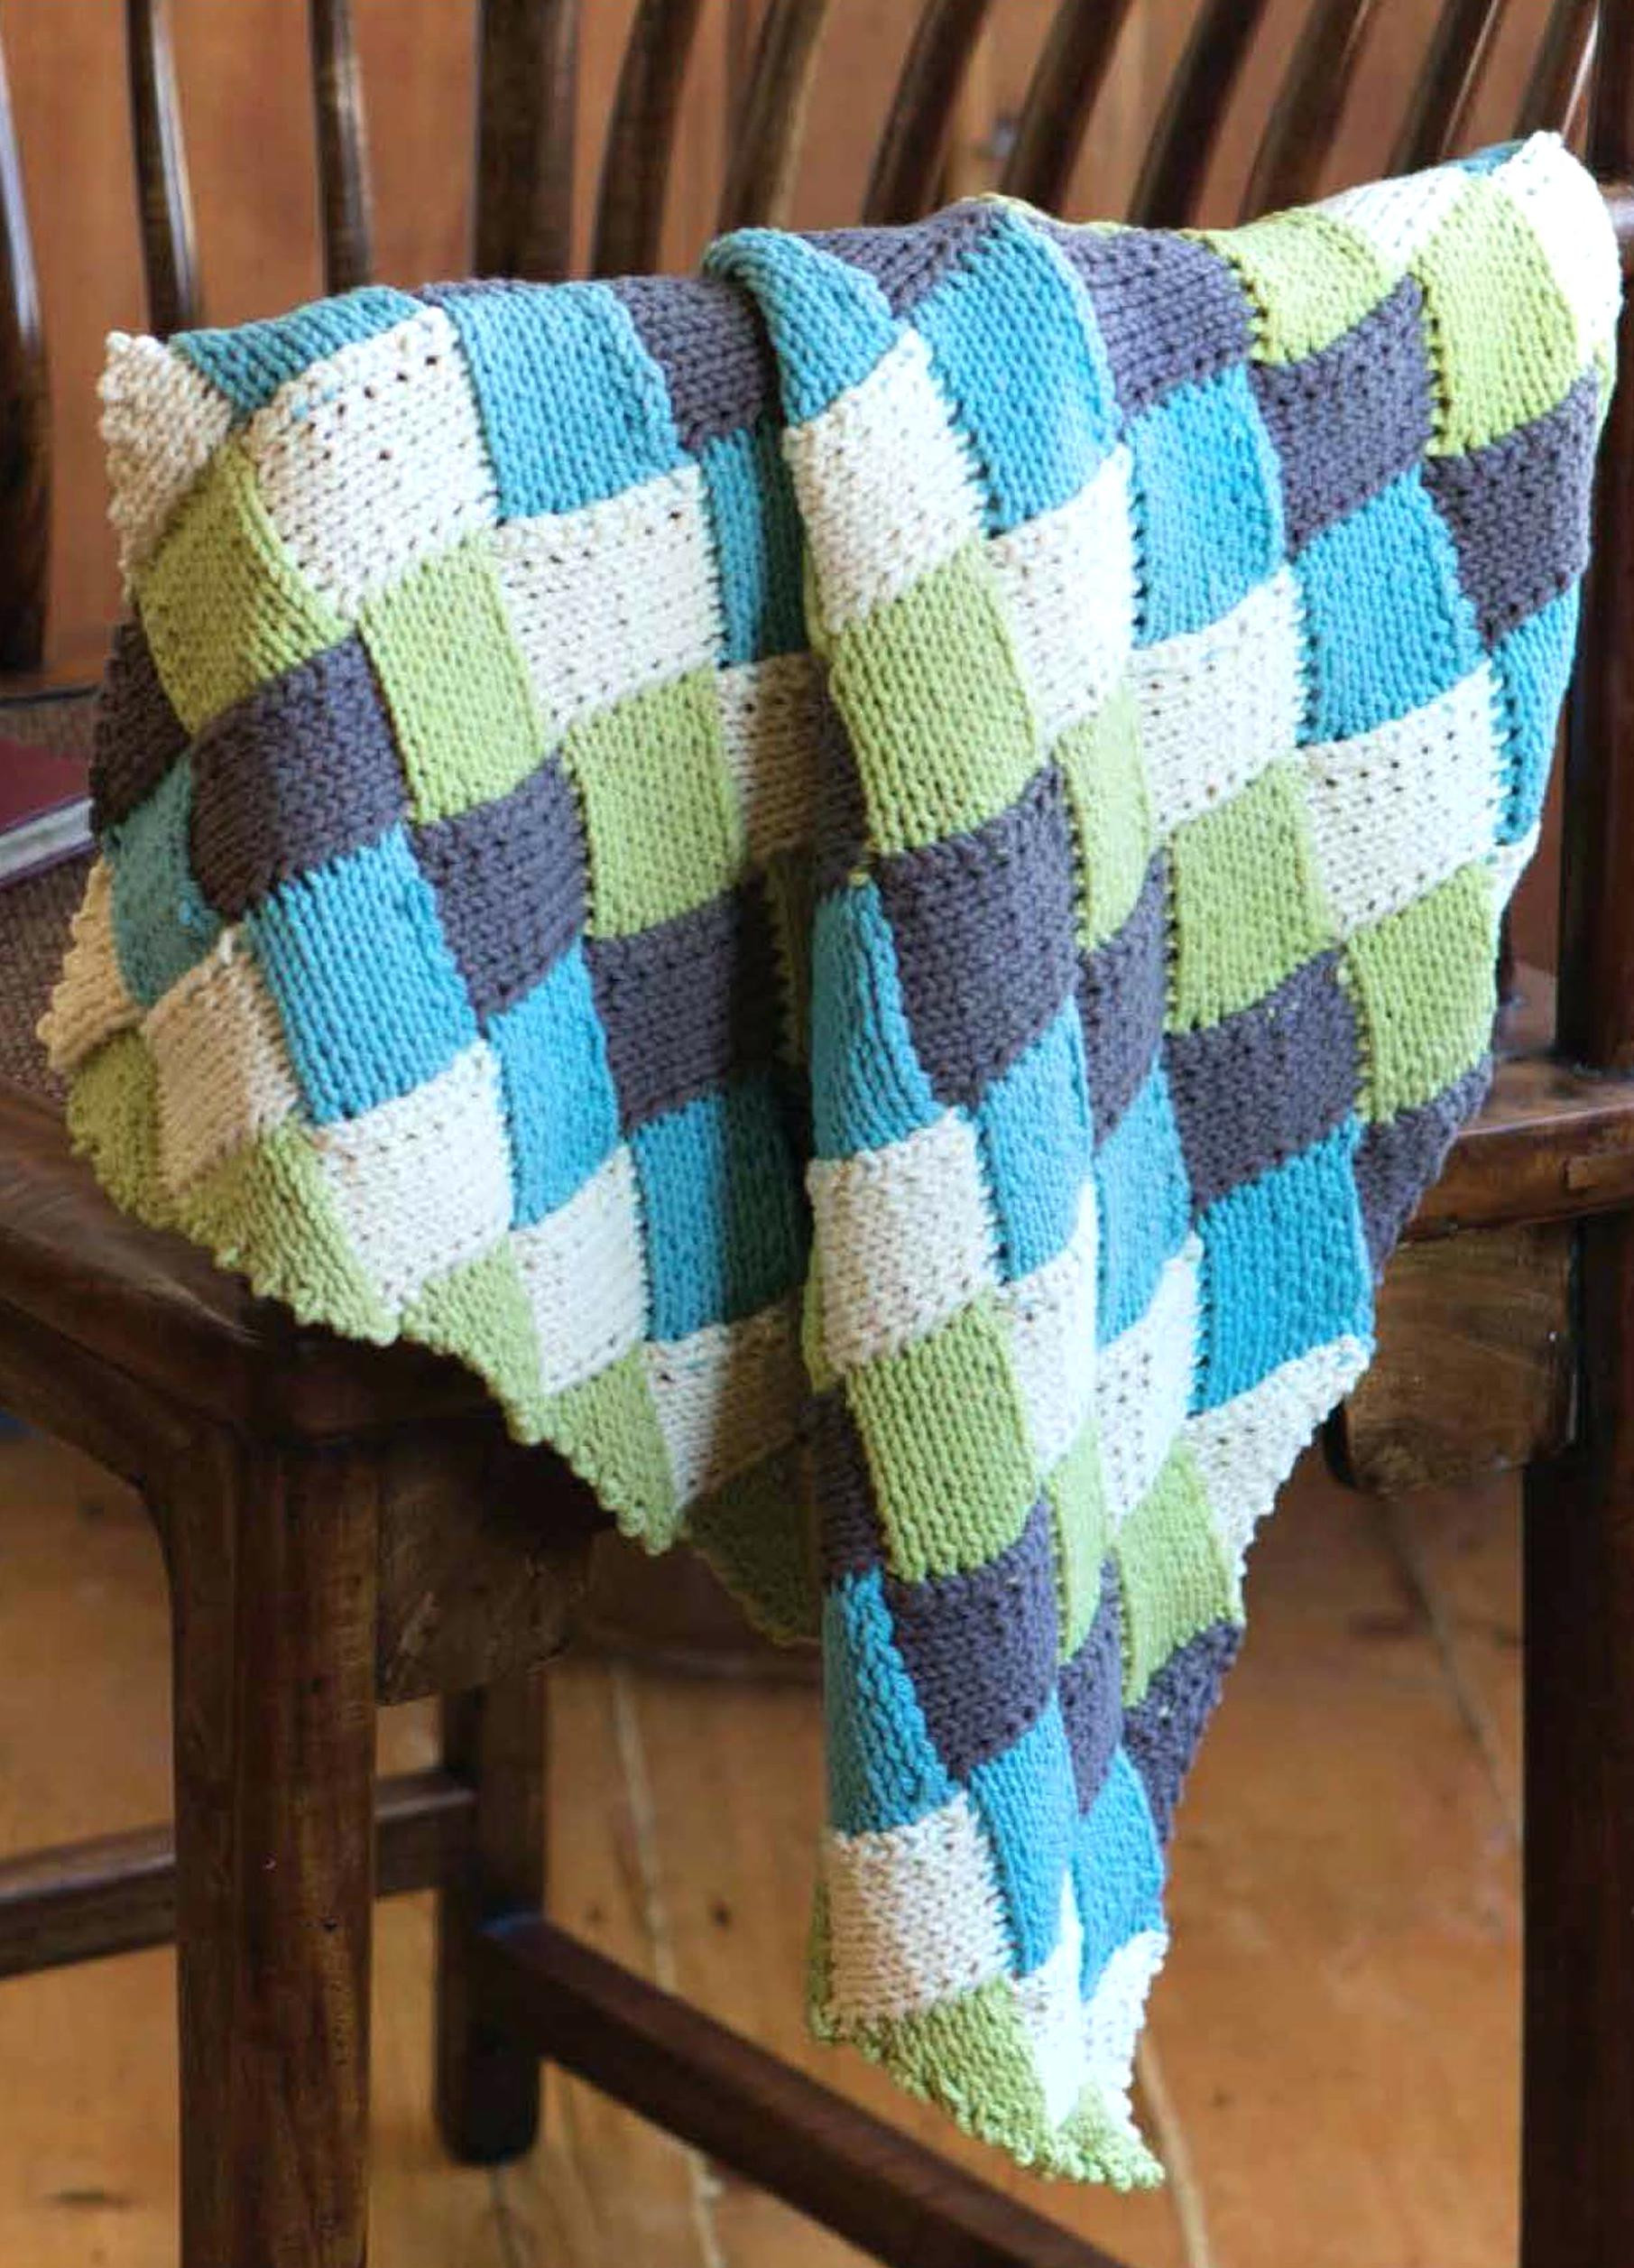 Luxury 6 Loom Knitting Baby Blanket Patterns the Funky Stitch Afghan Knitting Loom Of Superb 49 Pics Afghan Knitting Loom